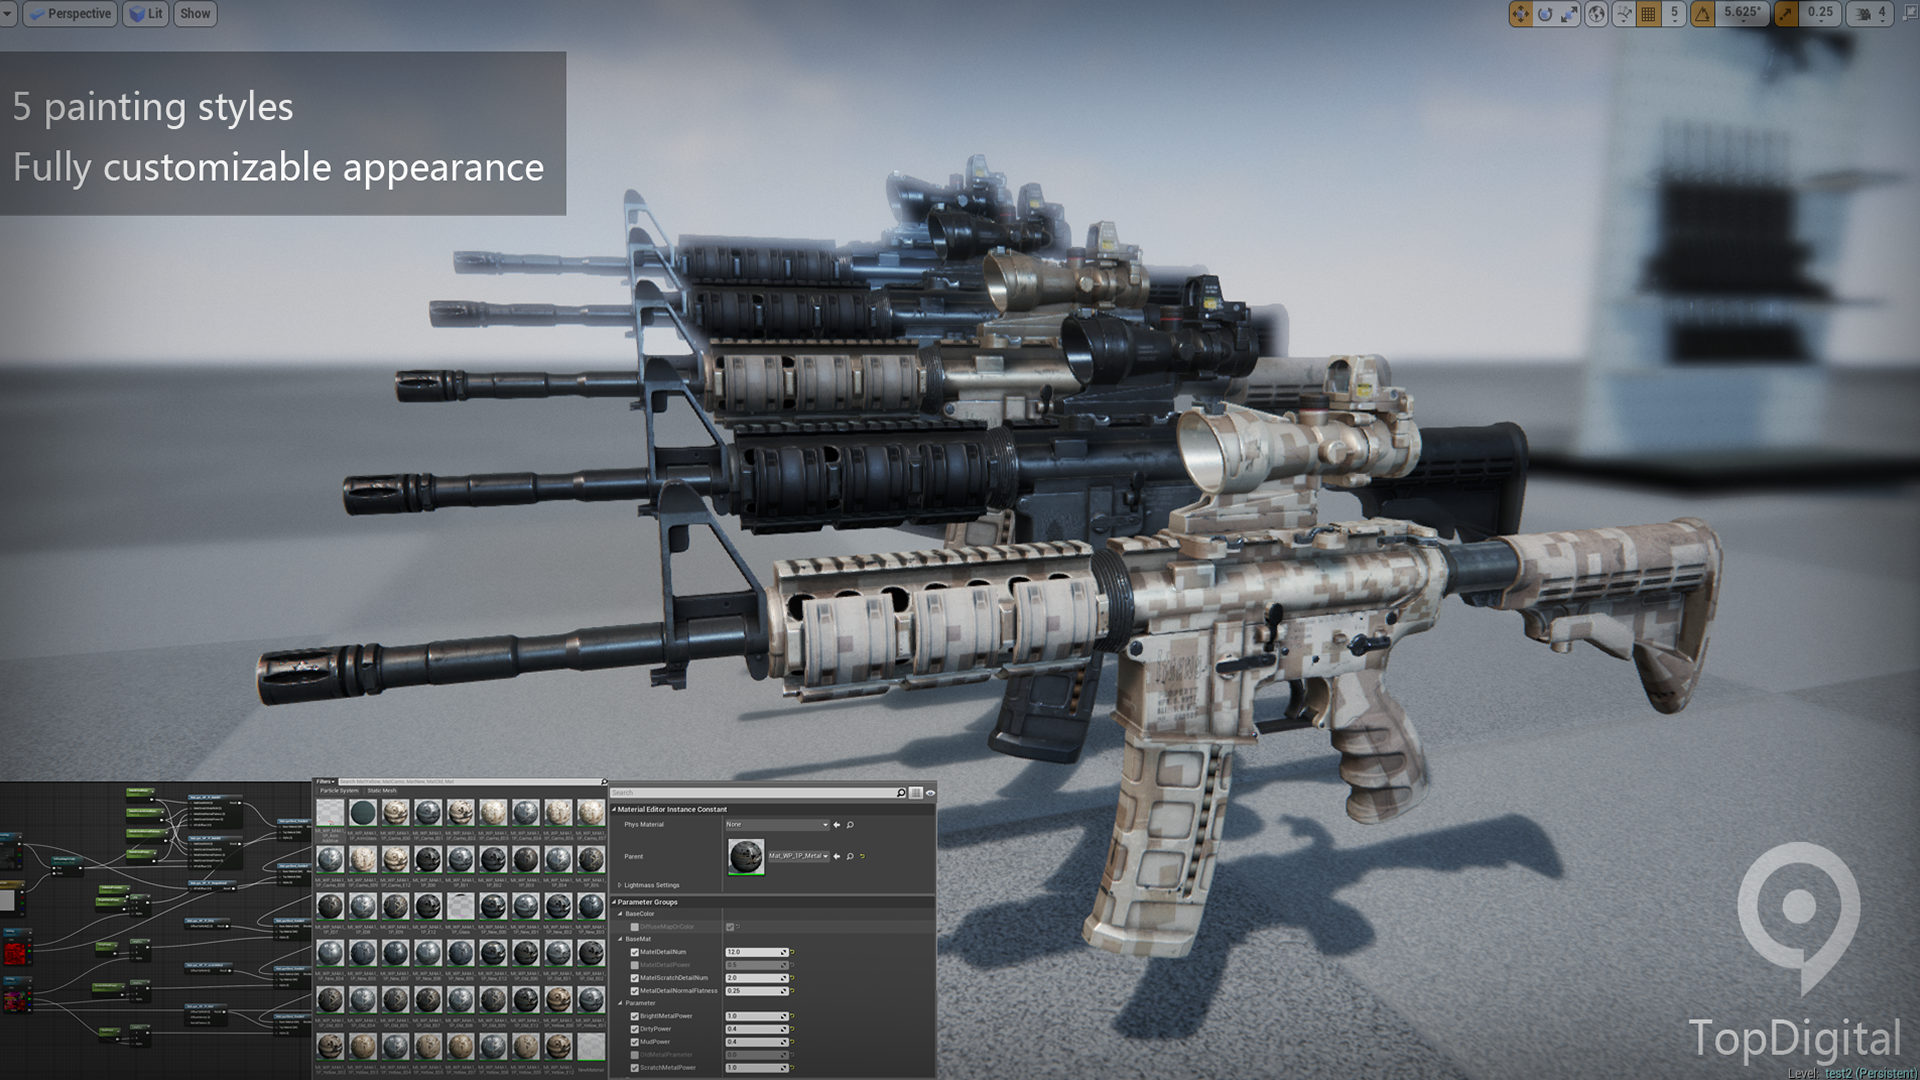 Weapon Pro - M4A1 by Lurker in Weapons - UE4 Marketplace